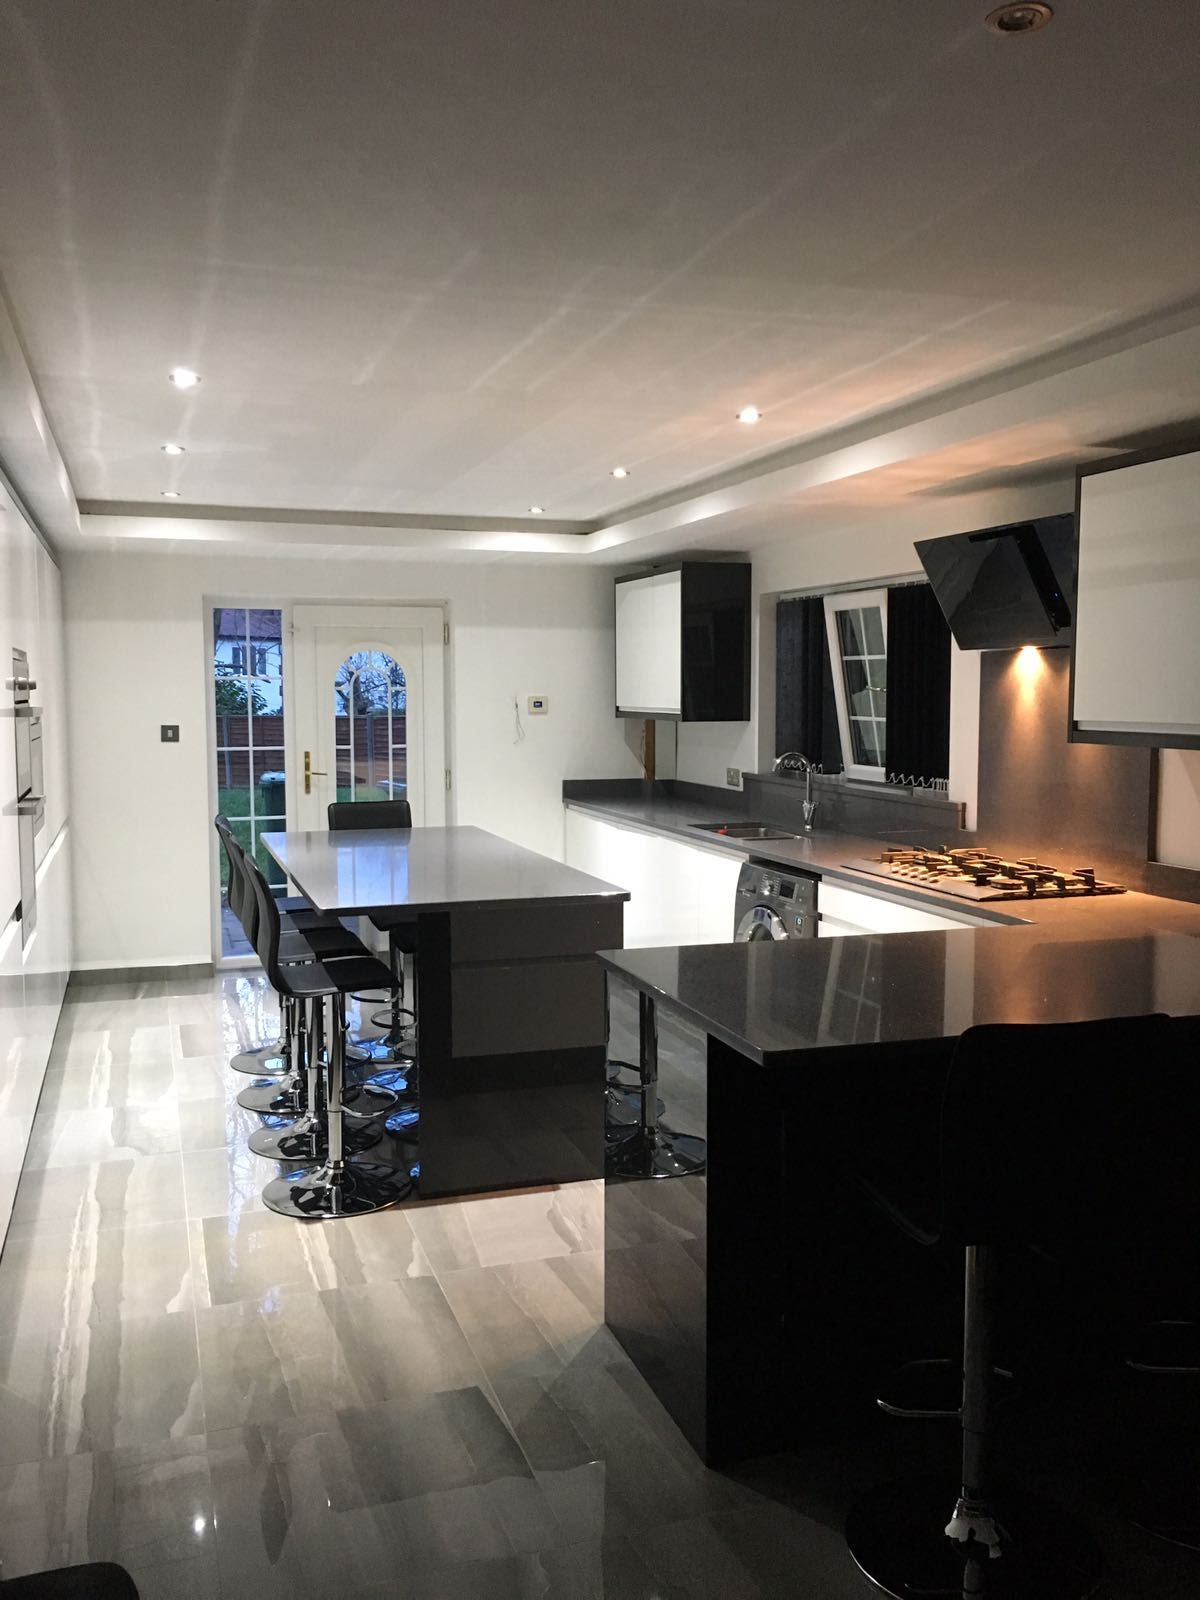 Adams kitchen leeds (With images) Kitchen, Home decor, Home